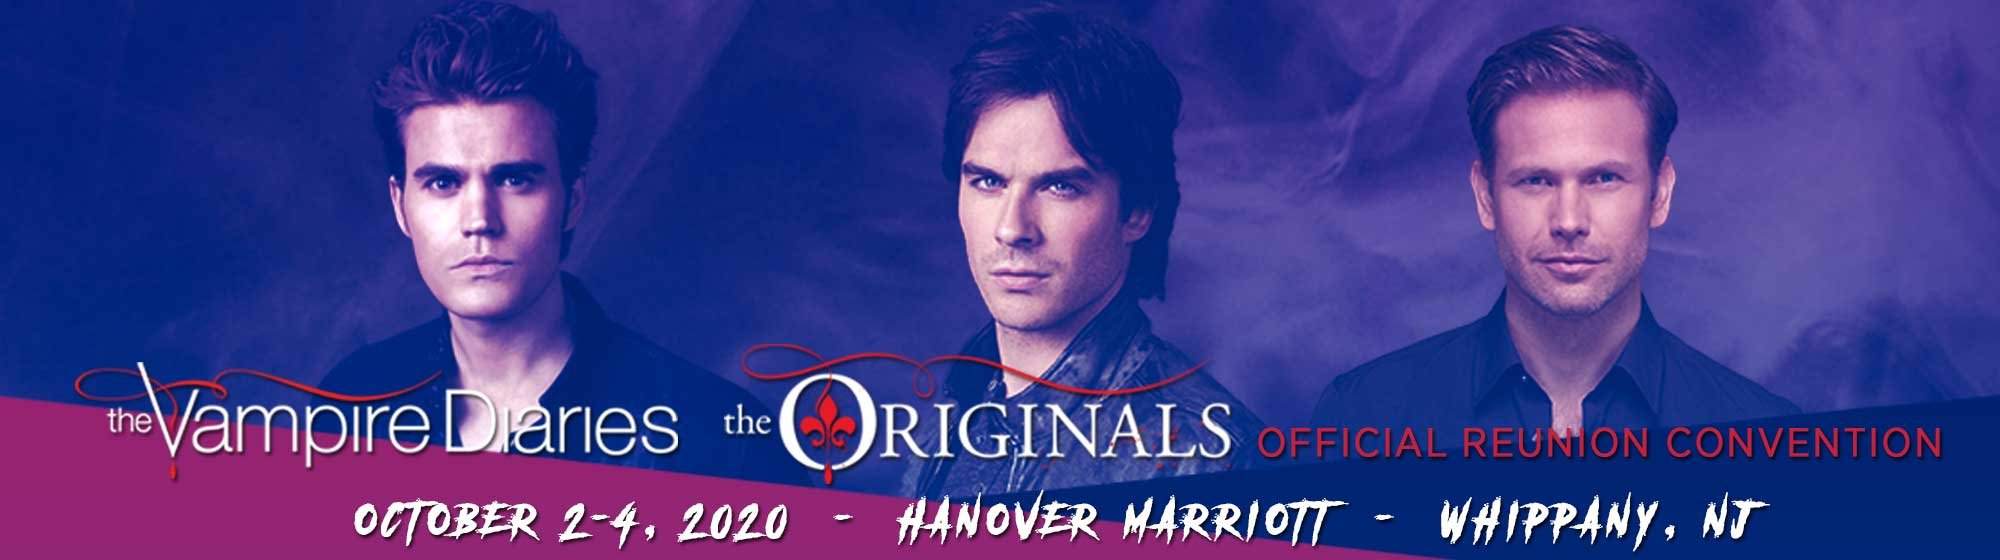 The Vampire Diaries and The Originals Official Convention Chicago, IL June 28-20, 2019